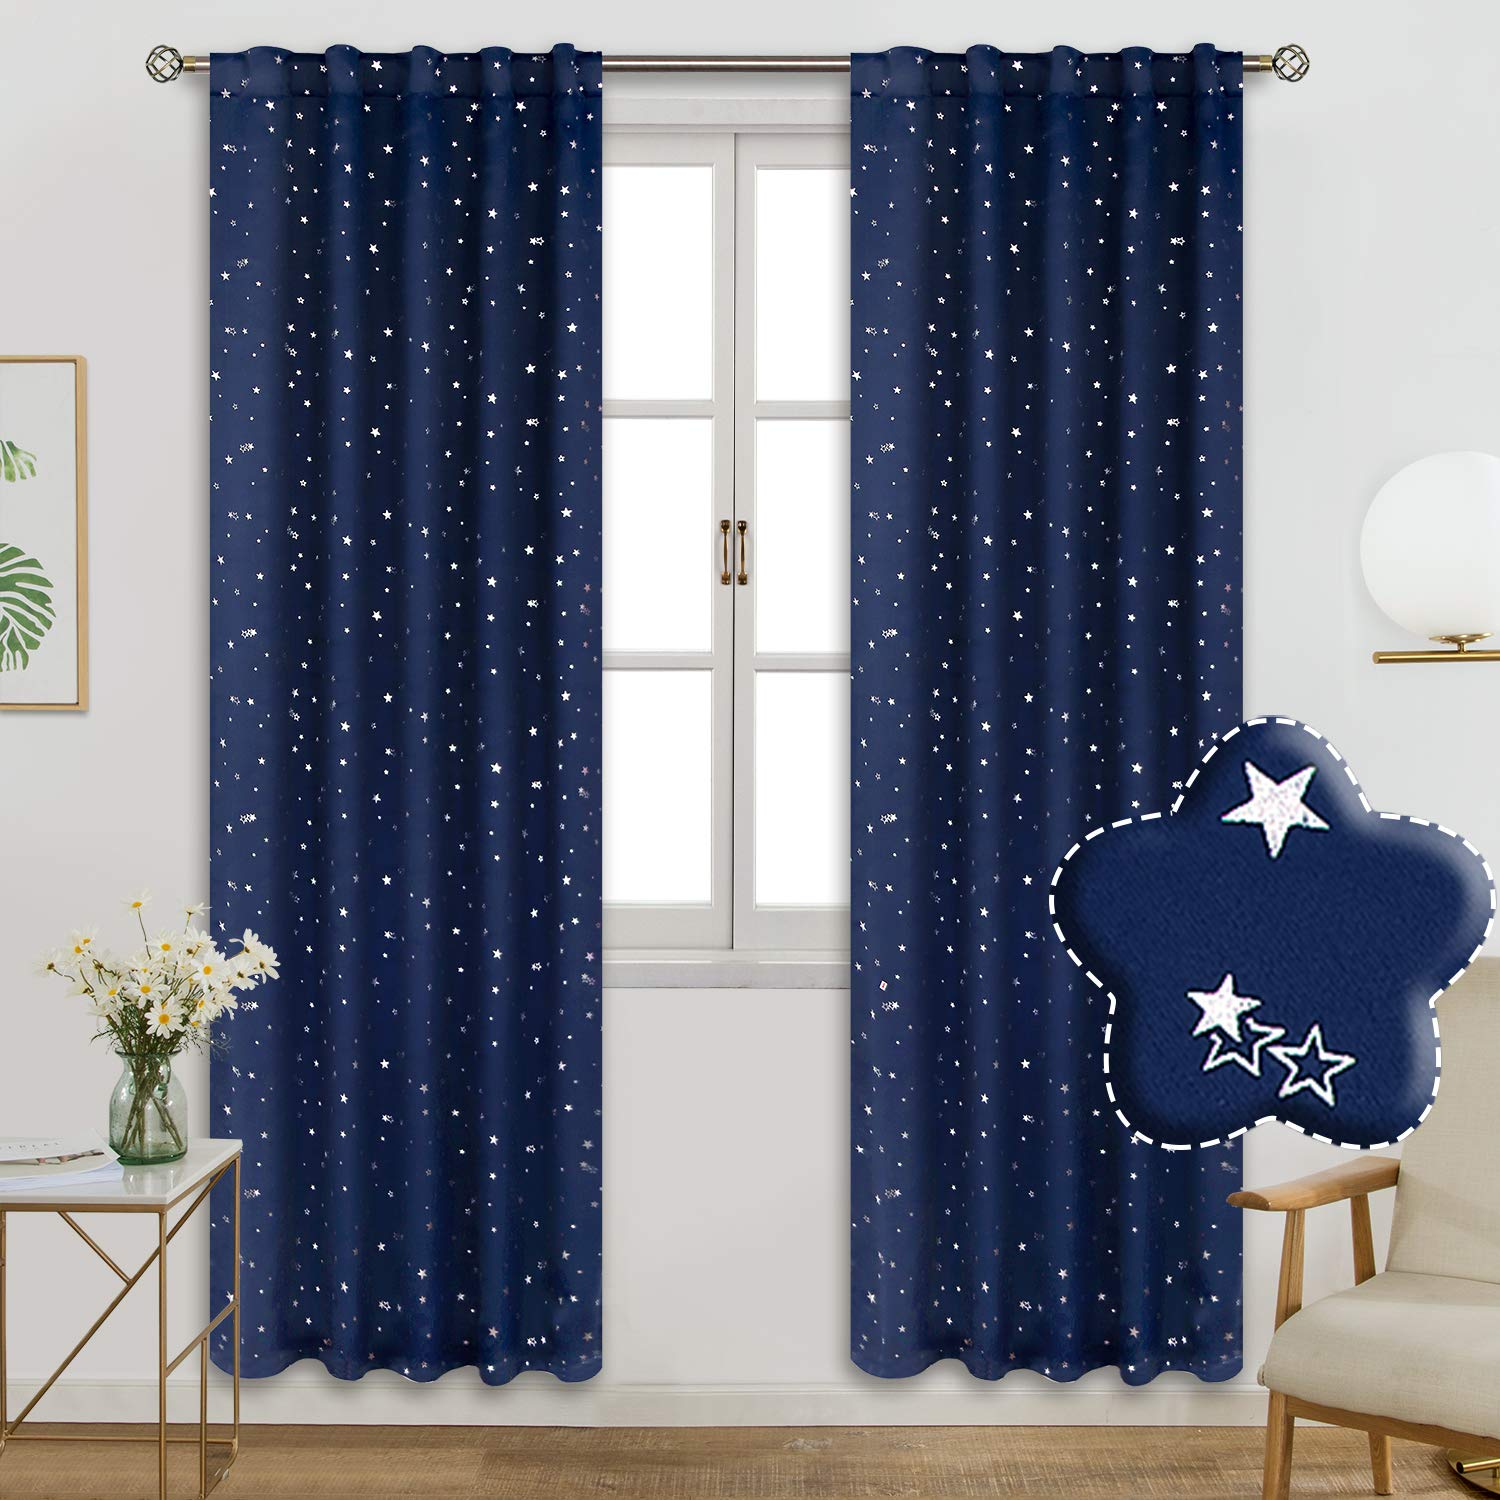 BGment Rod Pocket and Back Tab Blackout Curtains for Kids Bedroom - Sparkly Star Printed Thermal Insulated Room Darkening Curtain for Nursery, 42 x 84 Inch, 2 Panels, Navy Blue by BGment